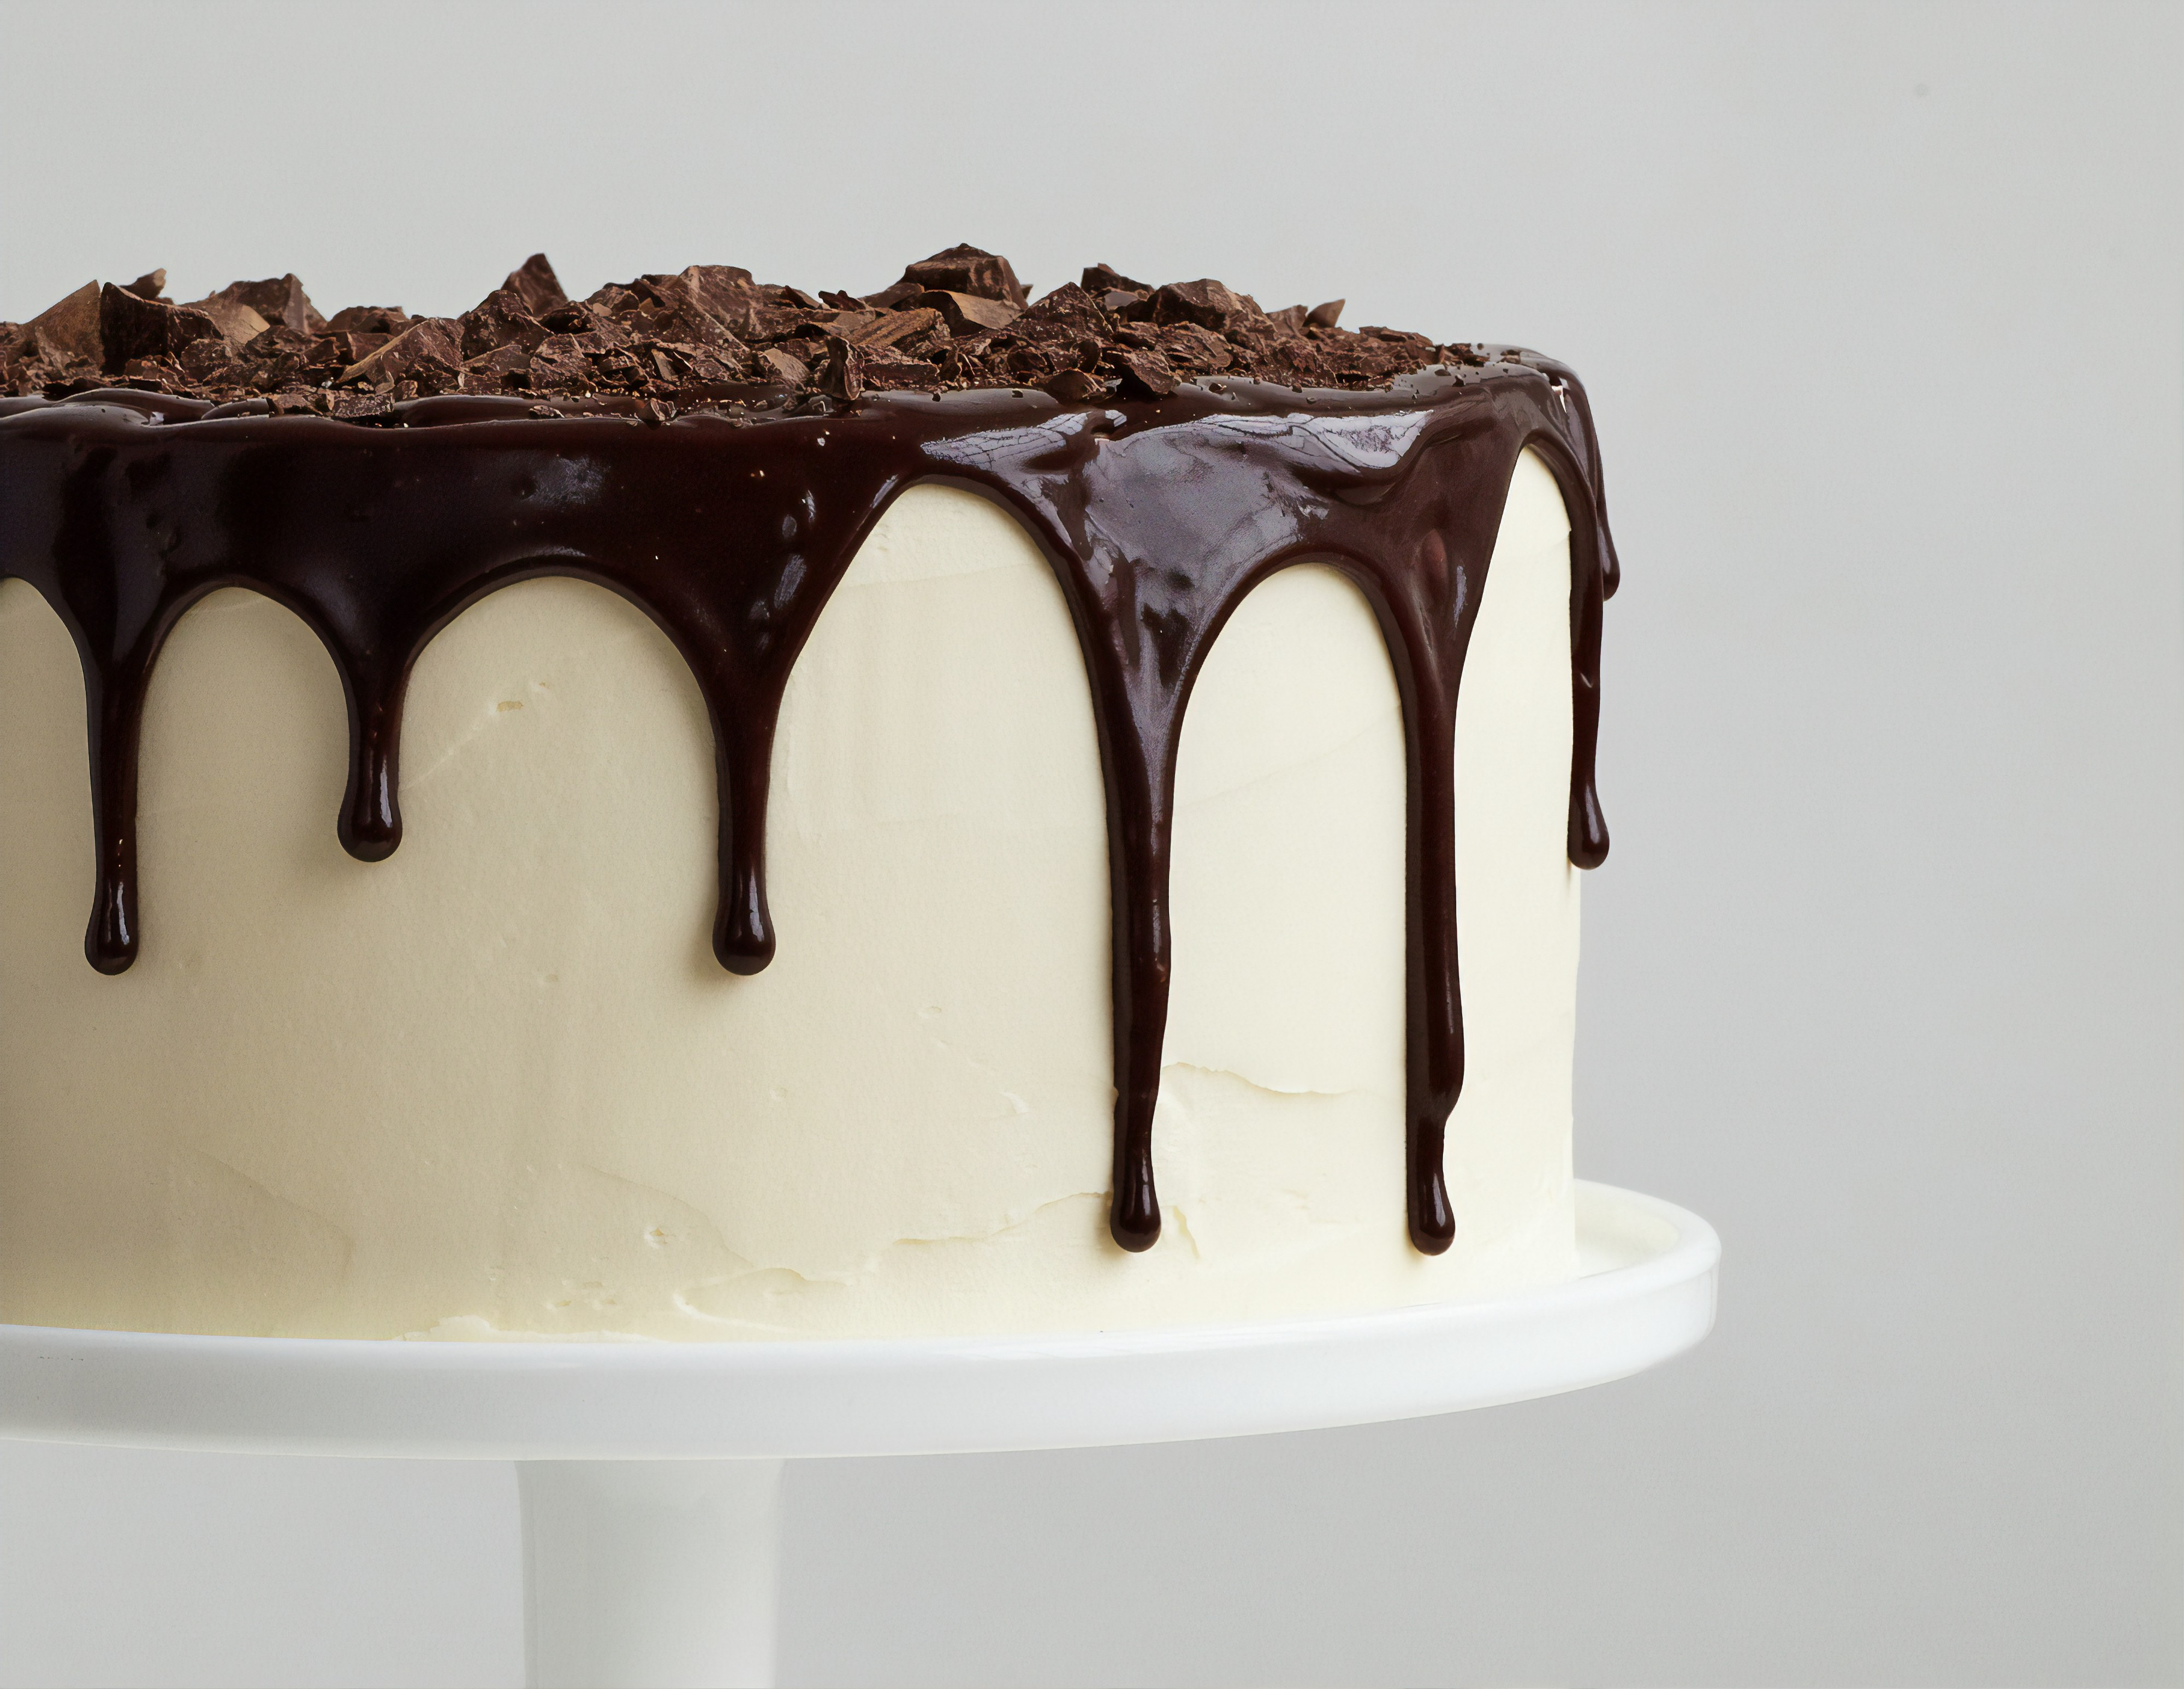 Photo of a vanilla cake on a cake platter with chocolate ganache dripping down the sides and shaved chocolate on top.